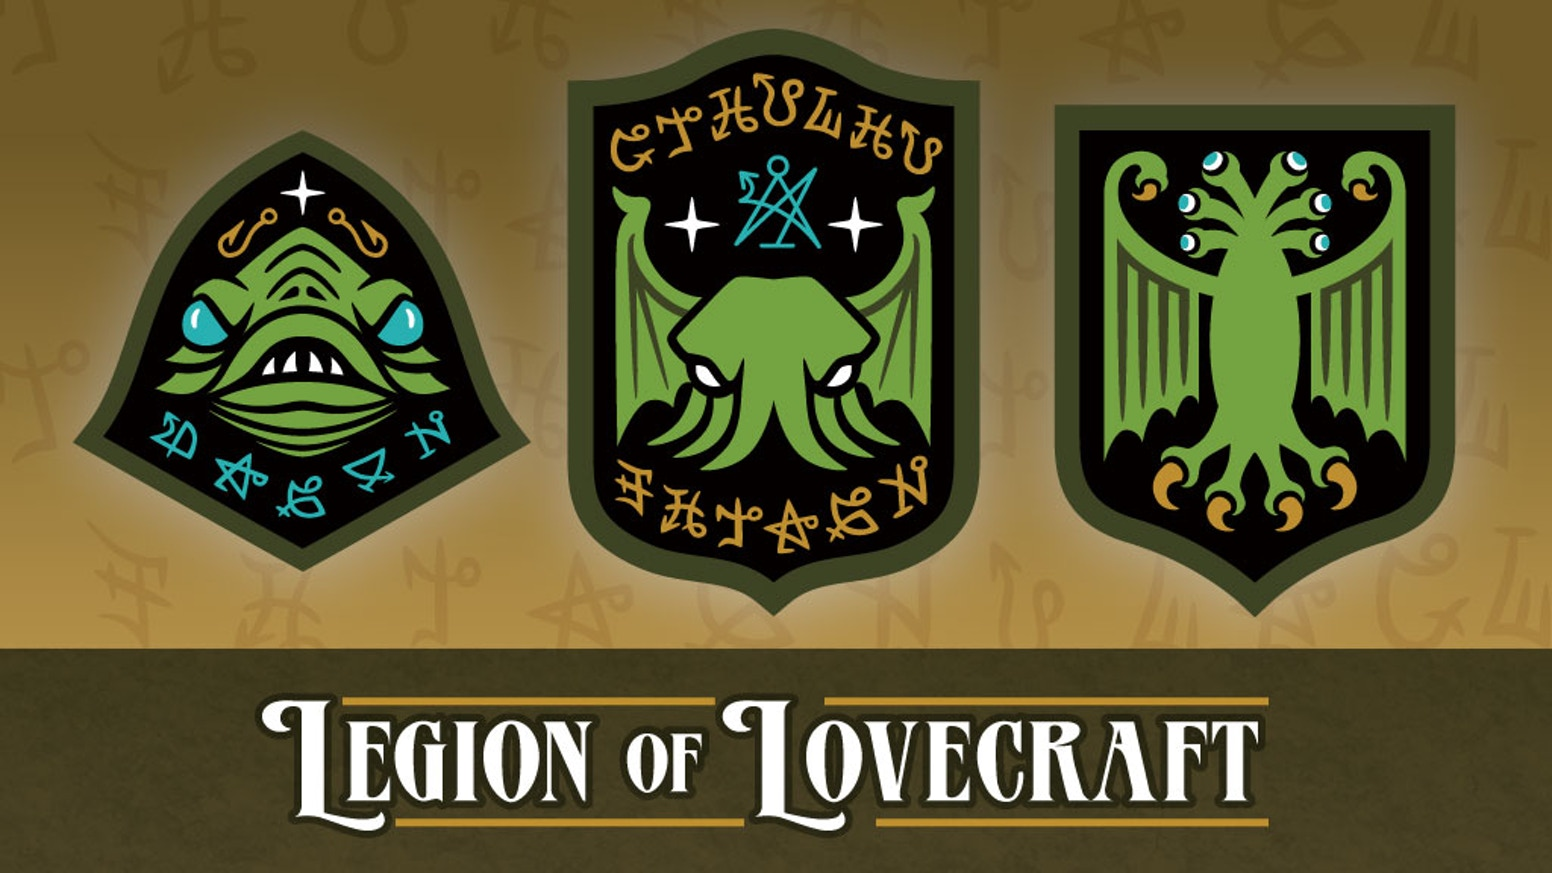 Cthulhu, Dagon & Elder Thing secret society embroidered patches based on the monsters & gods of H. P. Lovecraft.